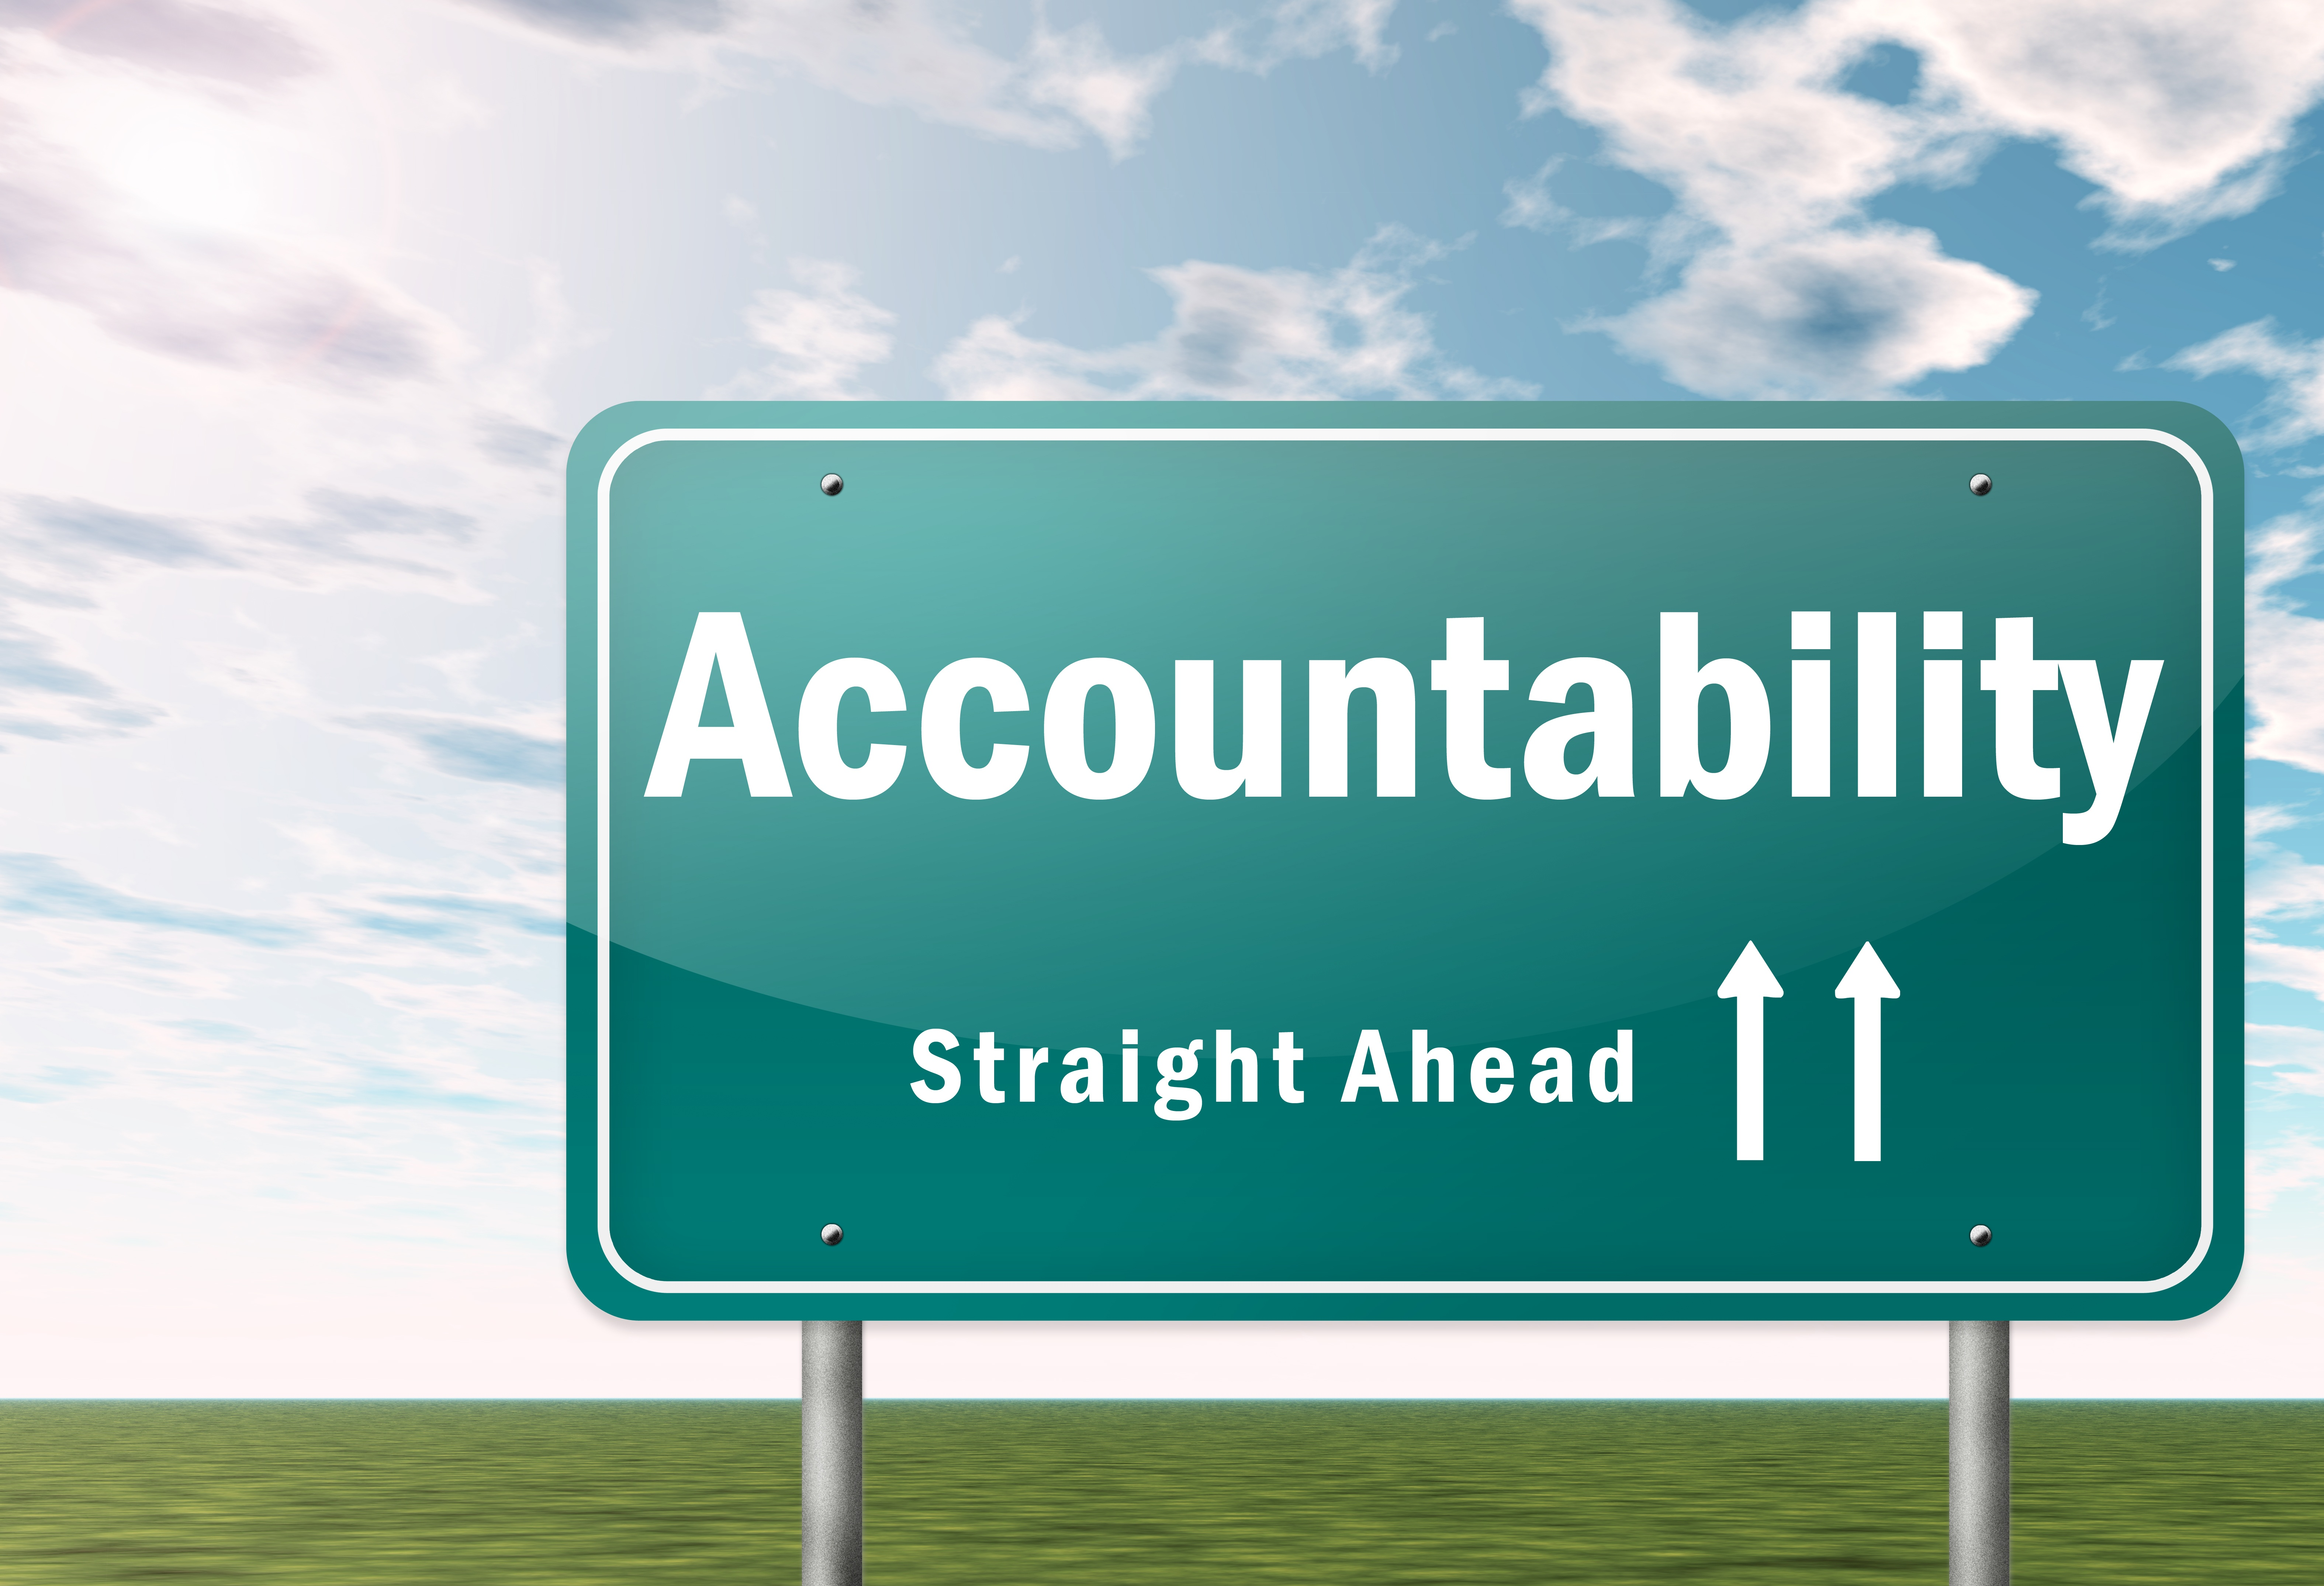 10 Signs of An Accountable Culture